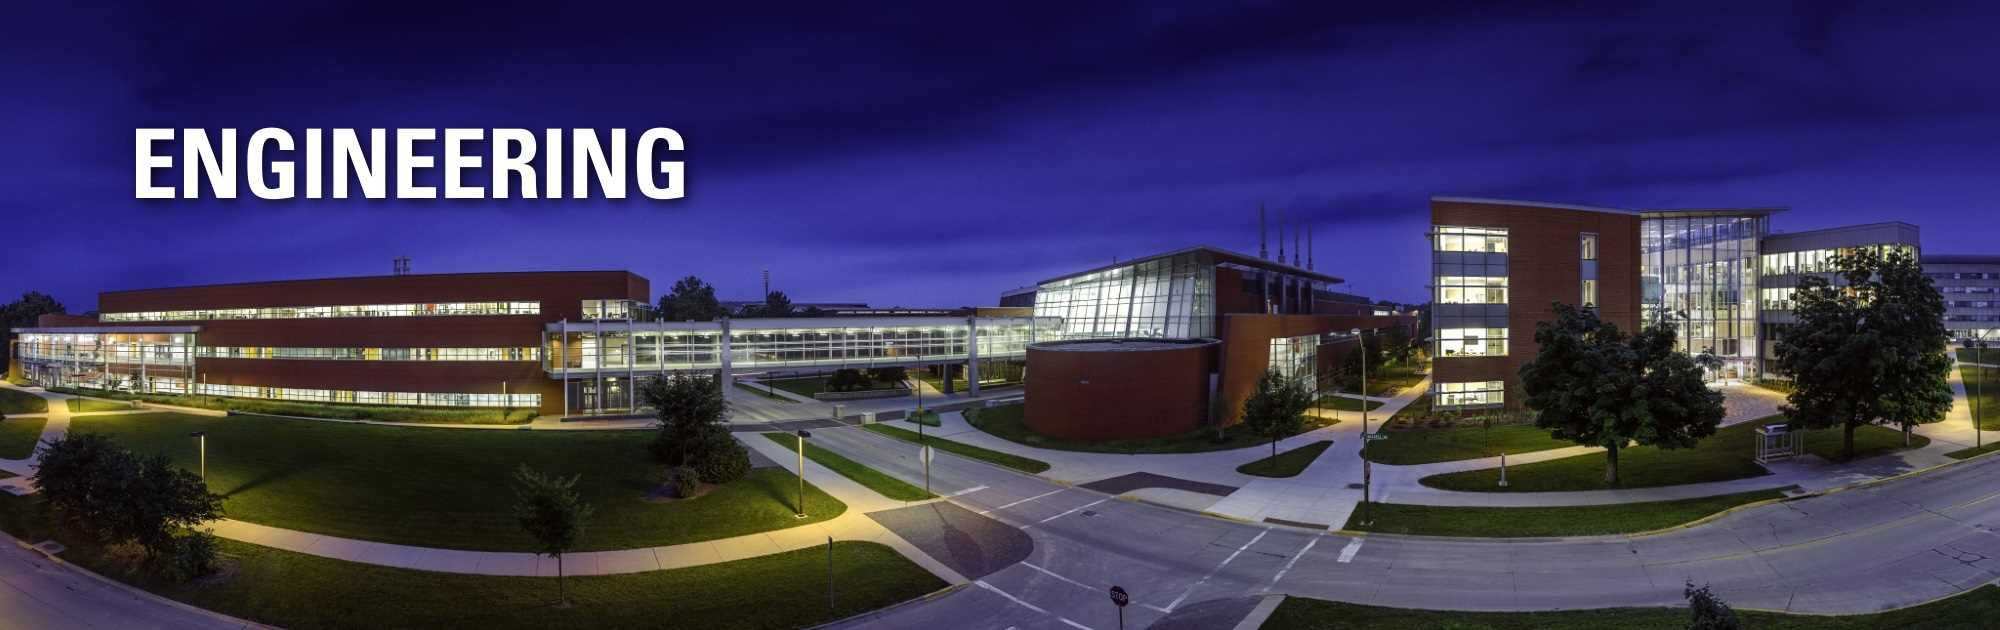 Nightview of the Iowa State University College of Engineering: Engineering.